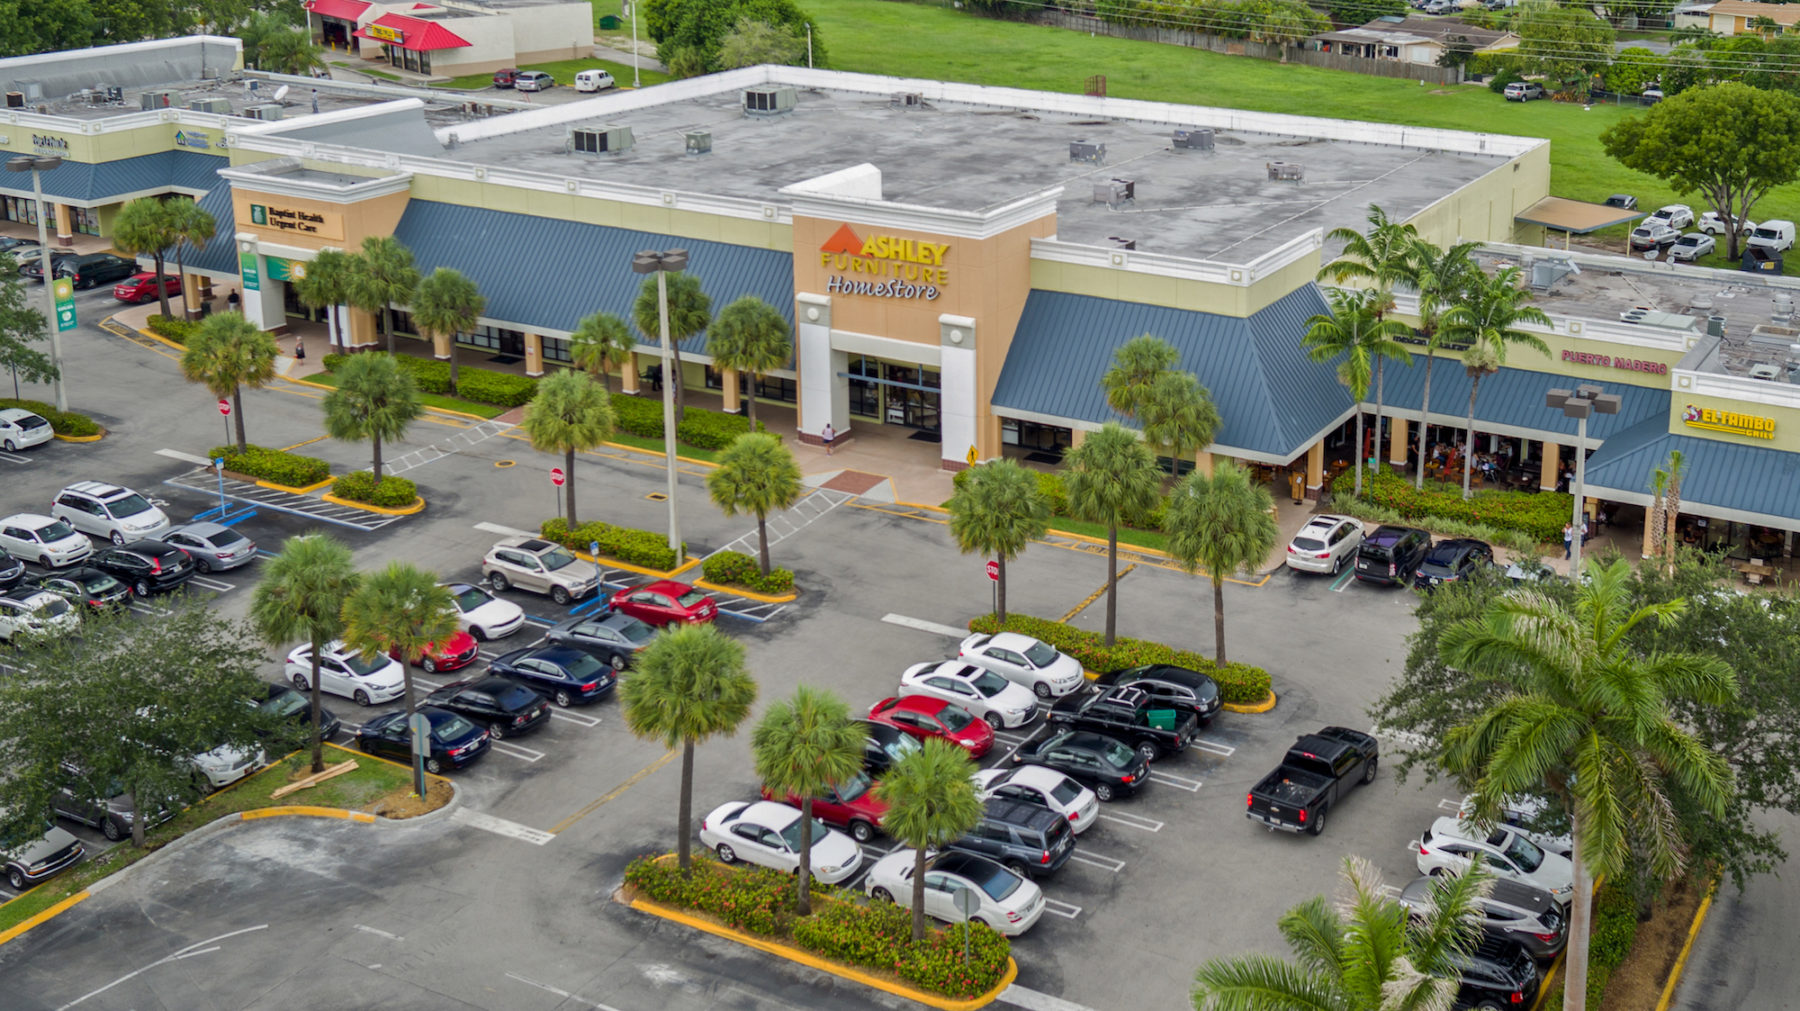 MMG Acquires Kendall Corners for $38.6M